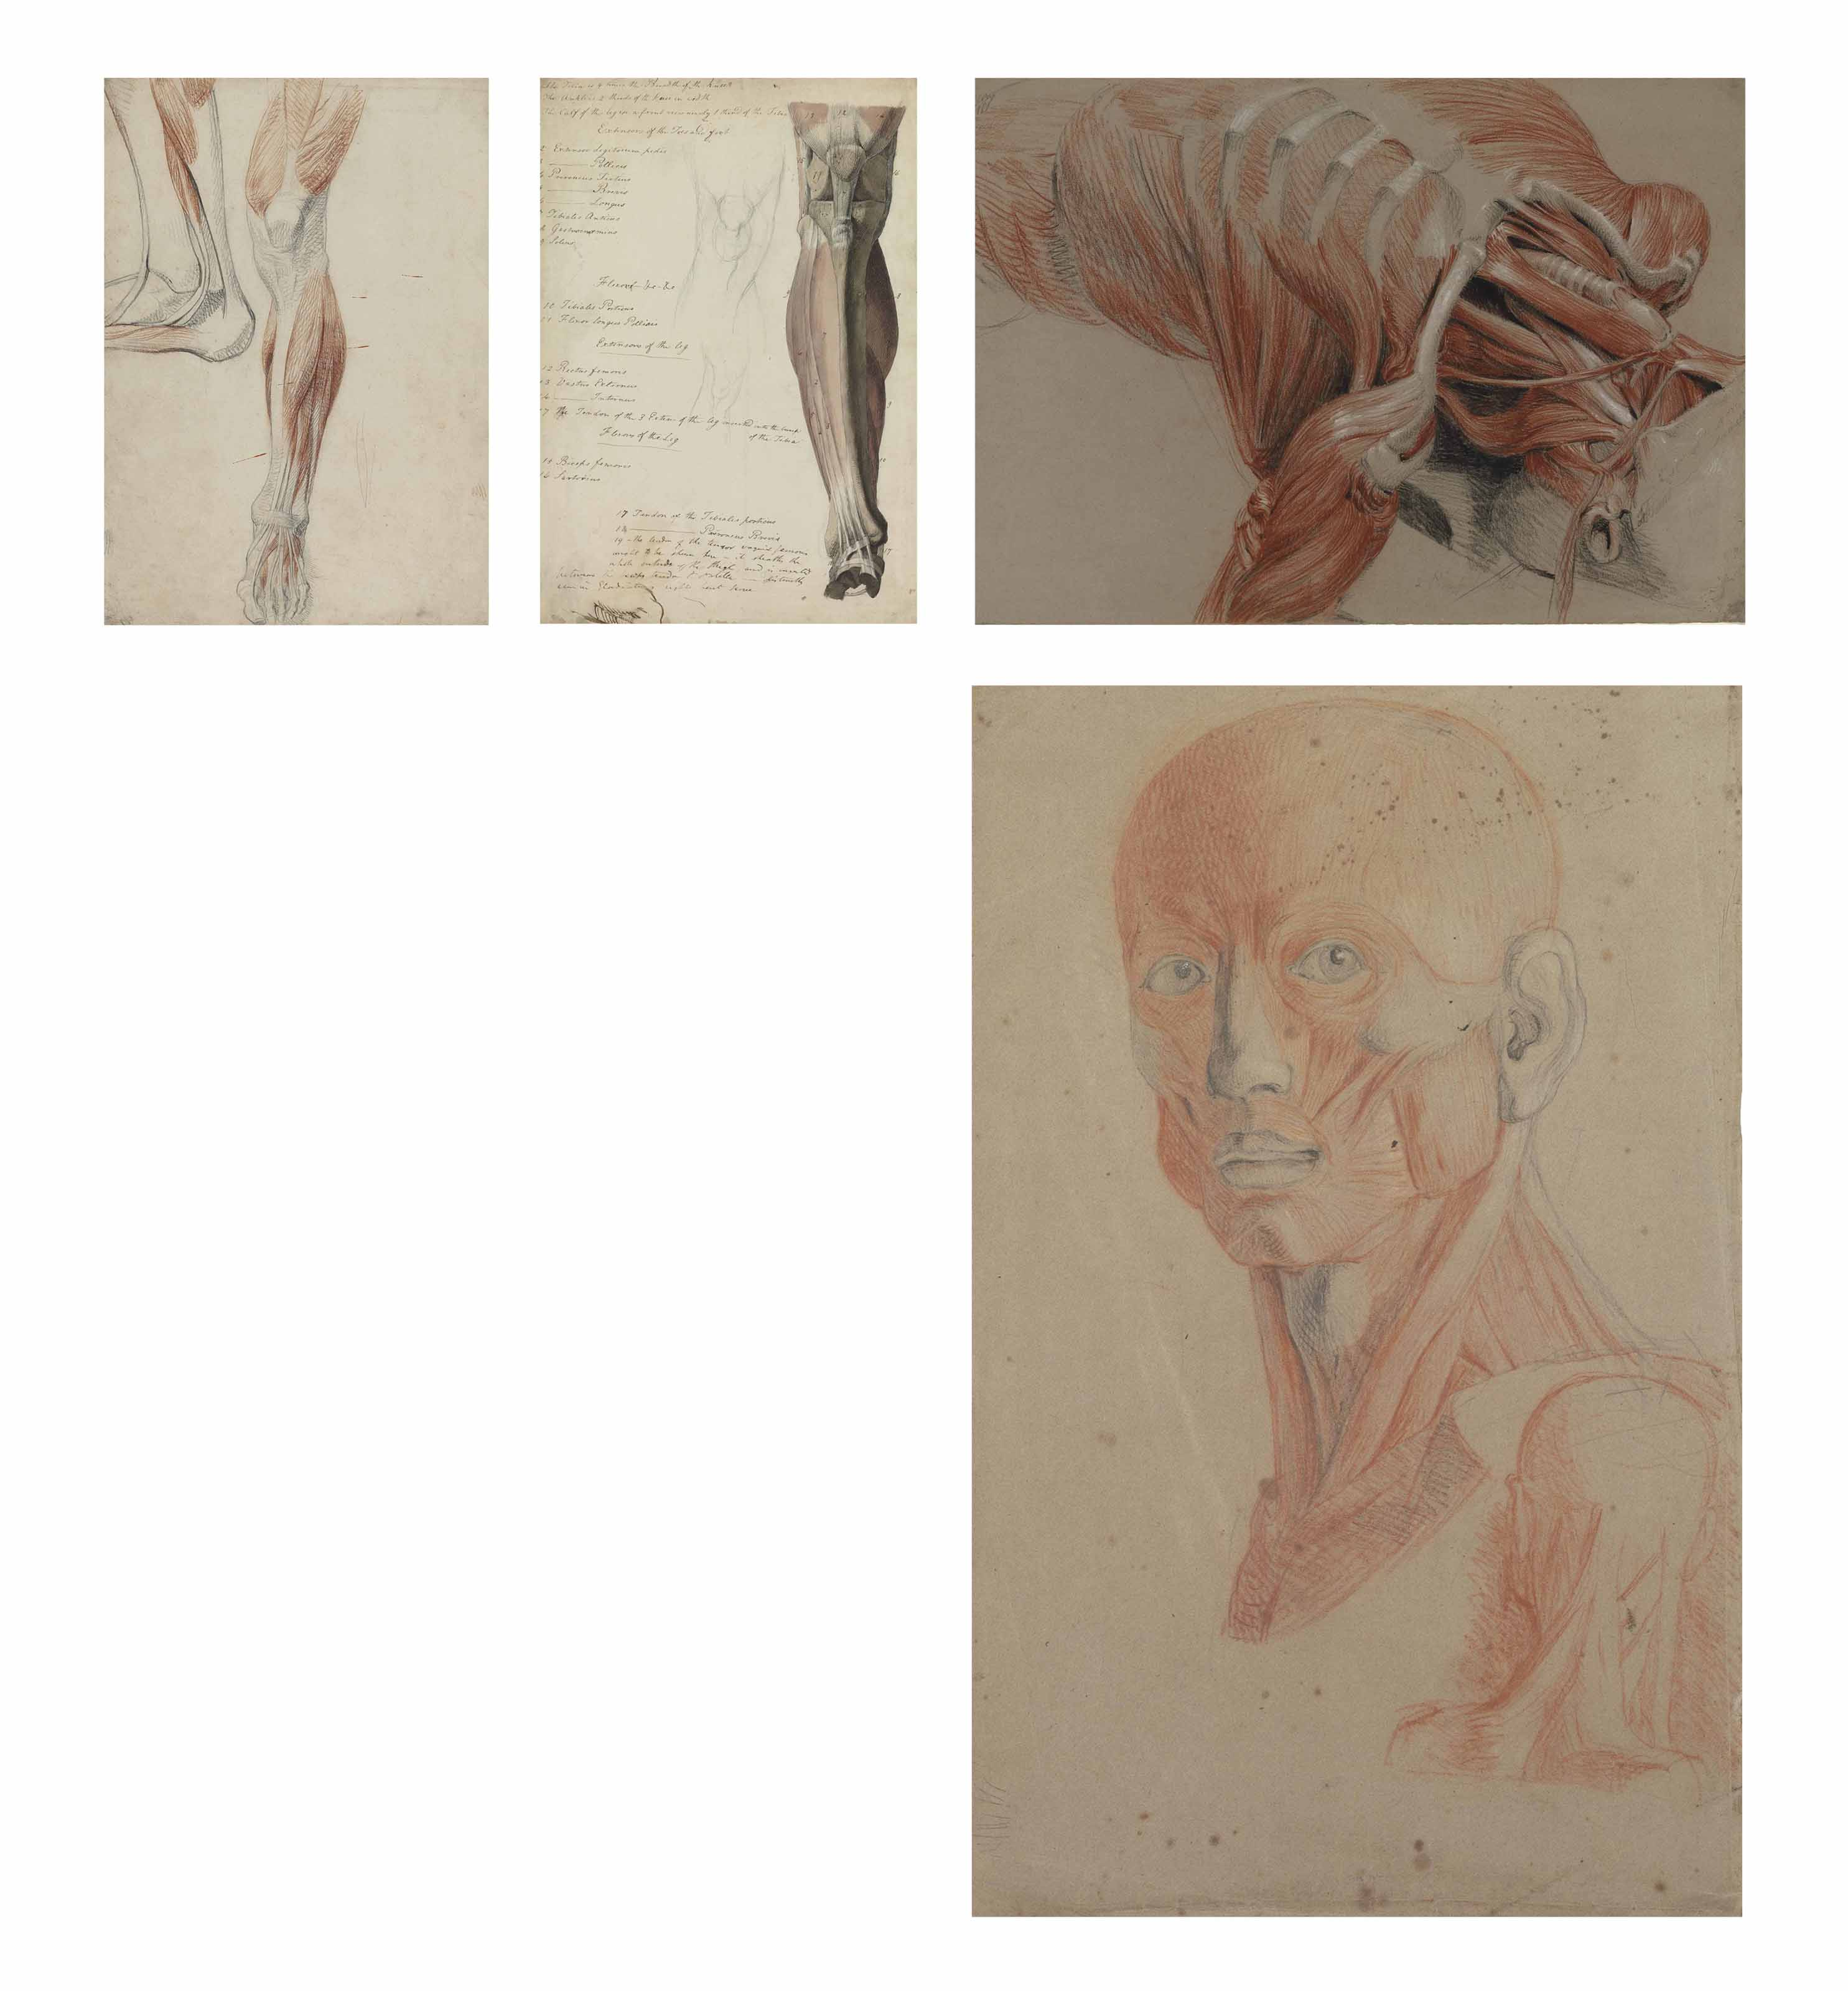 A group of fourteen écorché human figure studies including: Studies of the bones and tendons of a leg and foot, after Haydon; Two studies of an écorché head and neck after Haydon; A cast of an écorché foot, seen from the side; Studies of an arm, hand and head (recto) and a study of a male nude by Haydon (verso); Two views of an écorché head, from a cast by Bouchardon; A study of the muscles of a ribcage; Two views of an écorché leg (illustrated); The upper body of an écorché figure (illustrated); A dissected foot, showing the bones, muscles and tendons; The muscles of the upper arm, shoulder and part of the ribcage, from a dissected figure; Six studies of an arm, after Haydon; The muscles of a right arm (after Haydon, after Albinus?) (illustrated); and A leg from knee to ankle, after Haydon (illustrated)